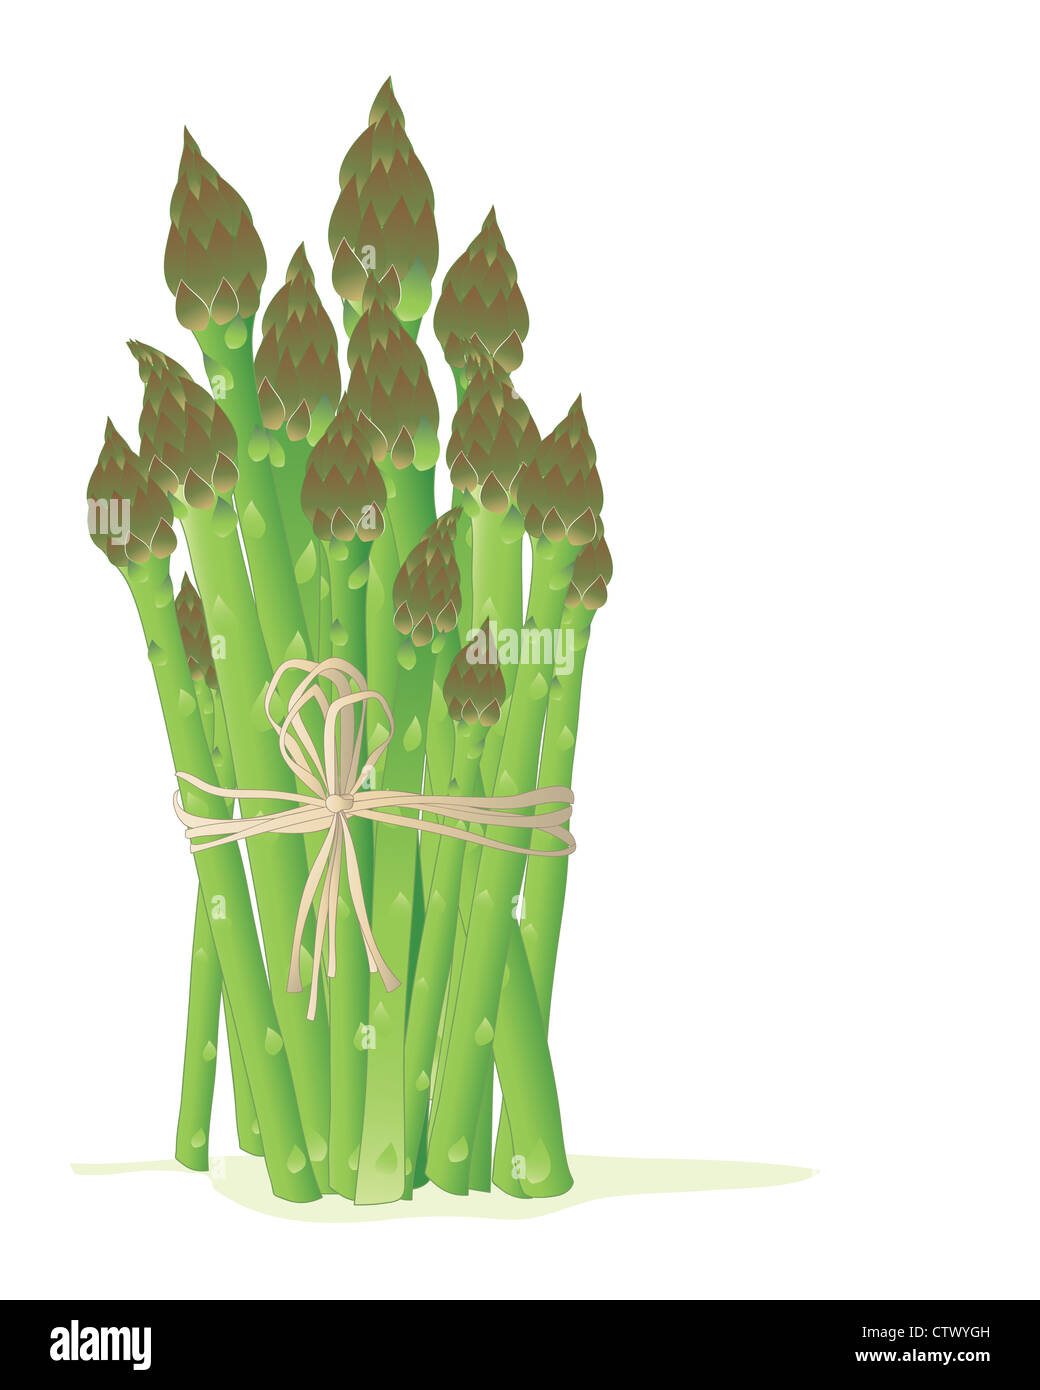 an illustration of a bundle of asparagus tied with a rustic bow on a white background in a food advert format - Stock Image